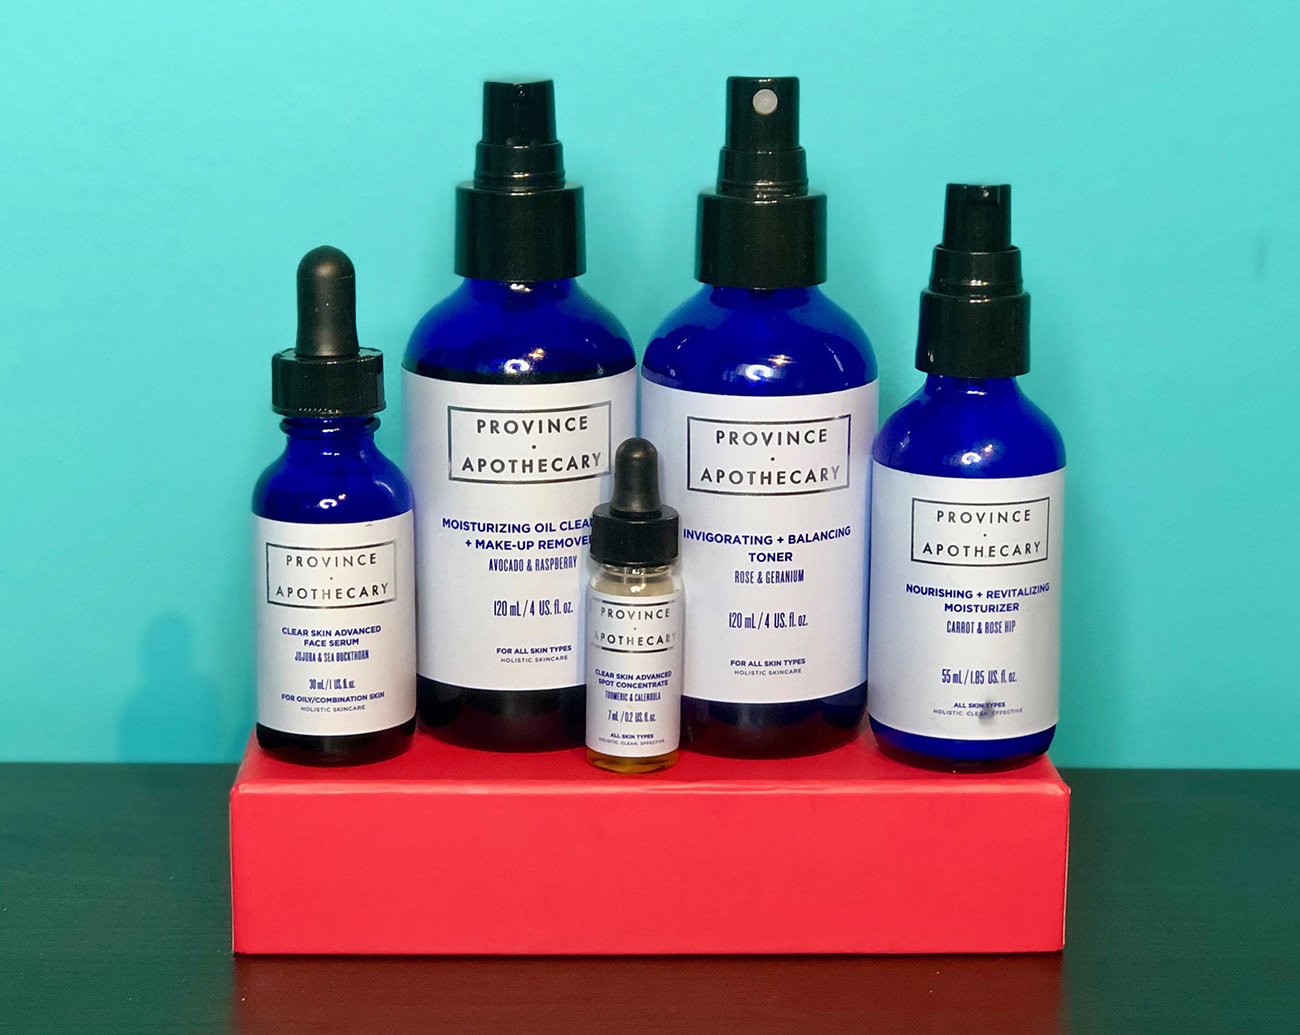 Shop local this Christmas - Province Apothecary